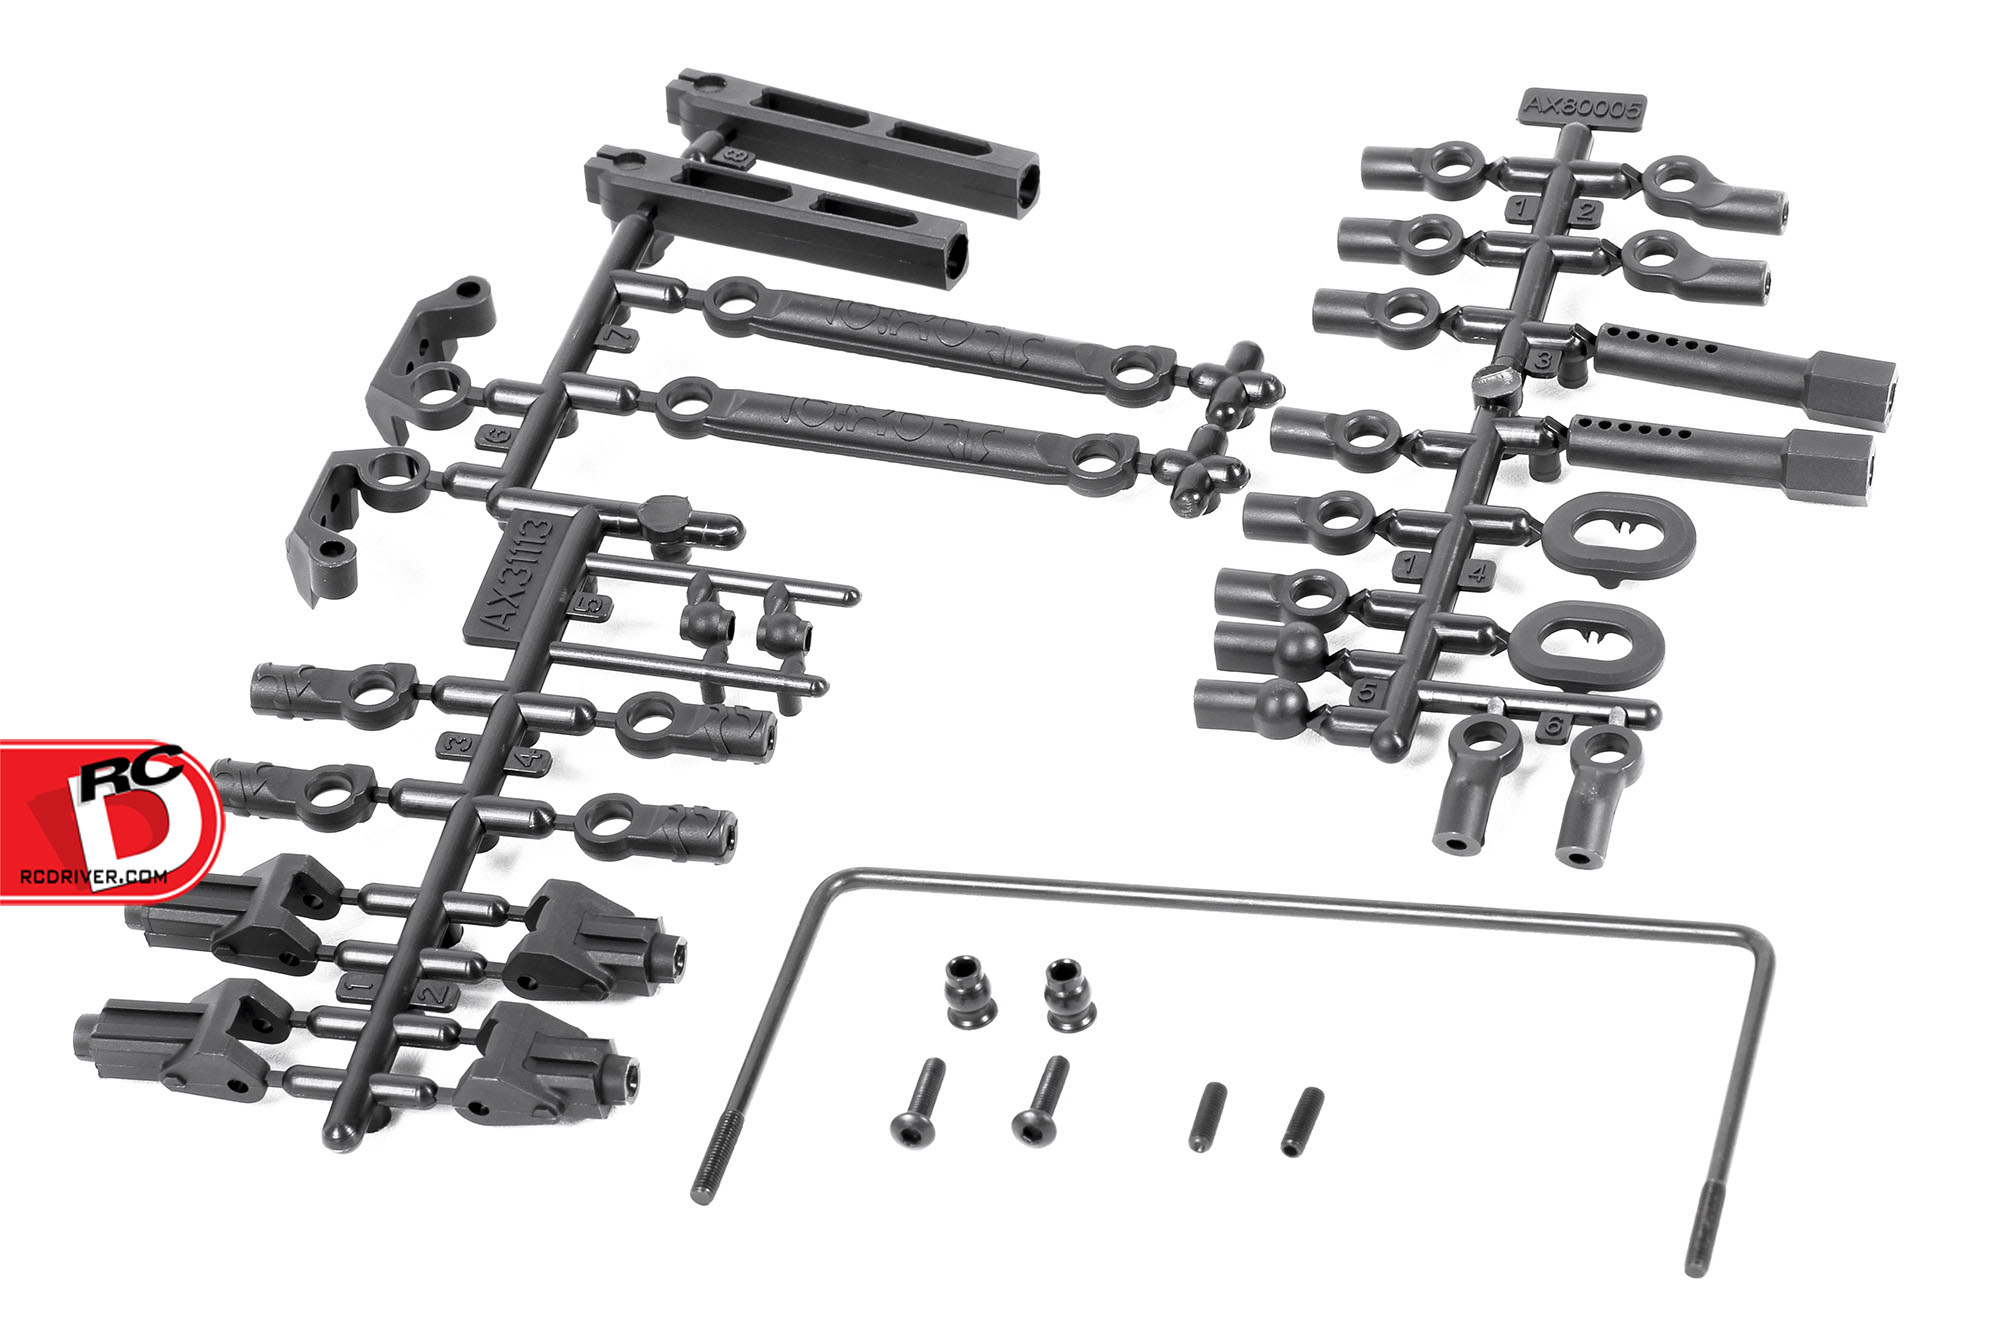 Axial Racing - RR10 Soft Rear Sway Bar Set copy